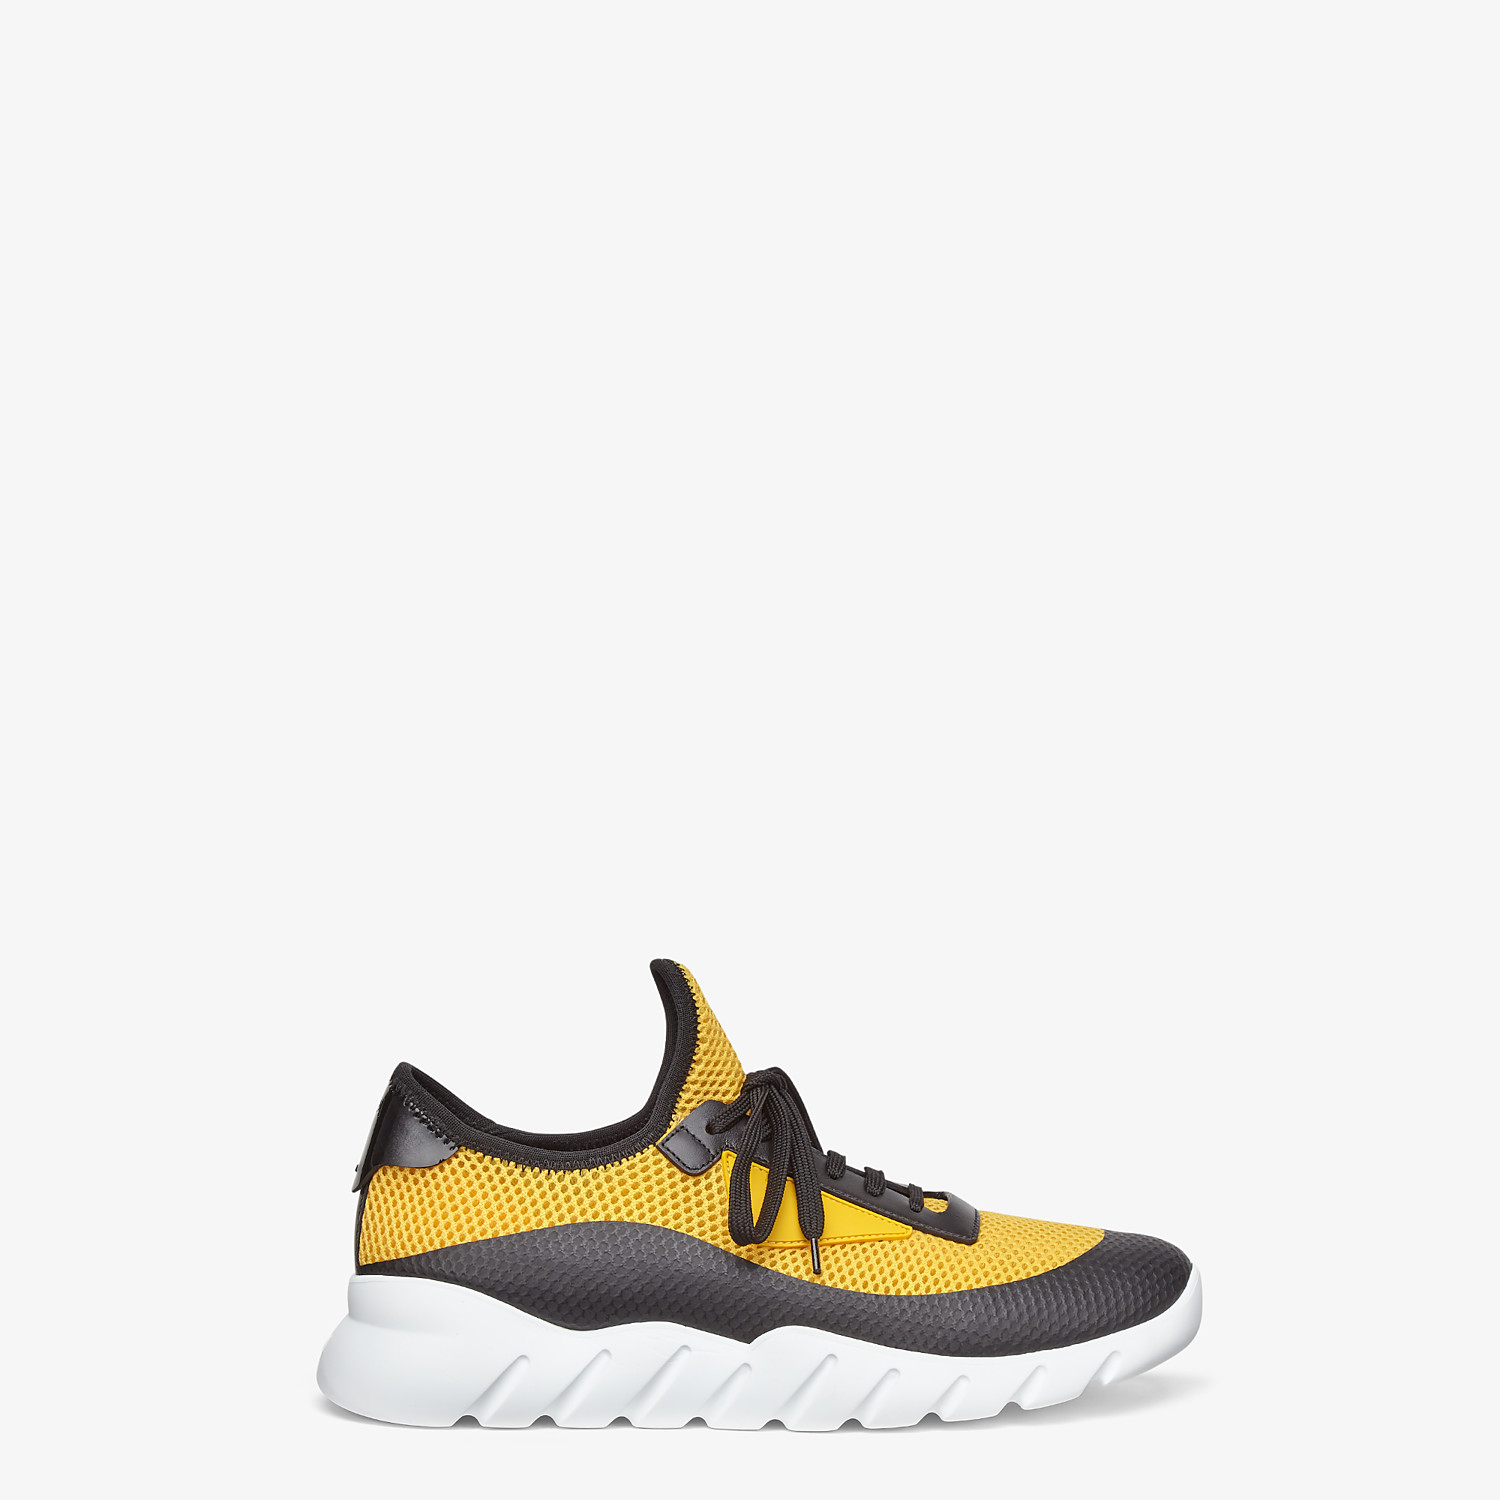 FENDI SNEAKERS - Yellow tech mesh running shoes - view 1 detail